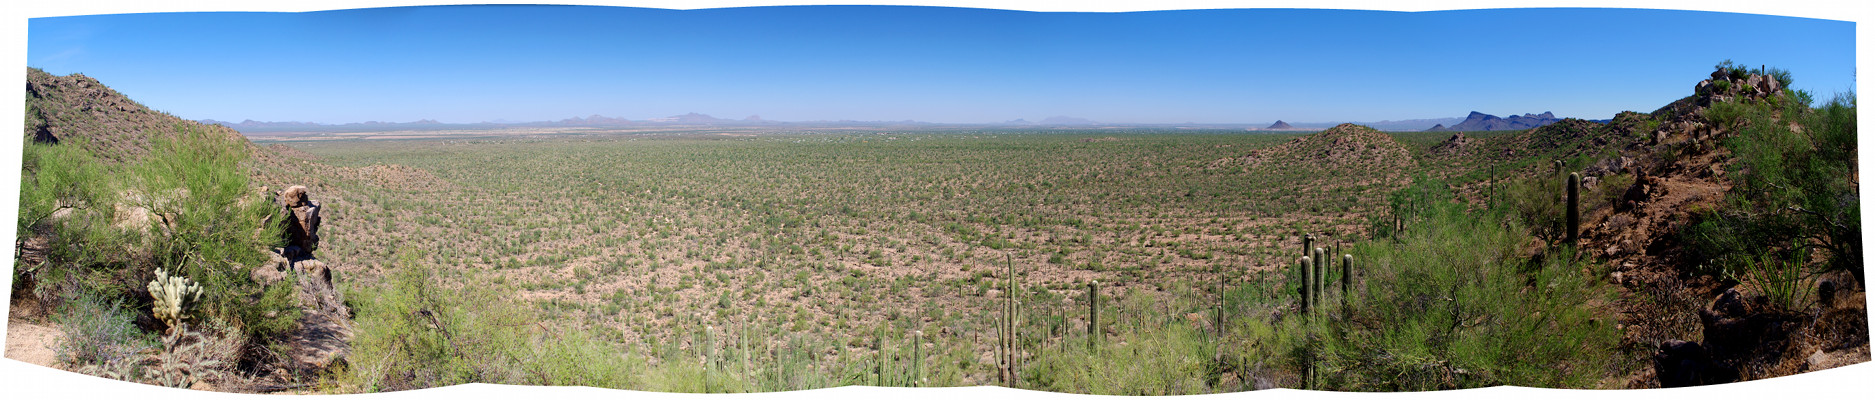 Panorama of the Valley View Overlook in Saguaro National Park